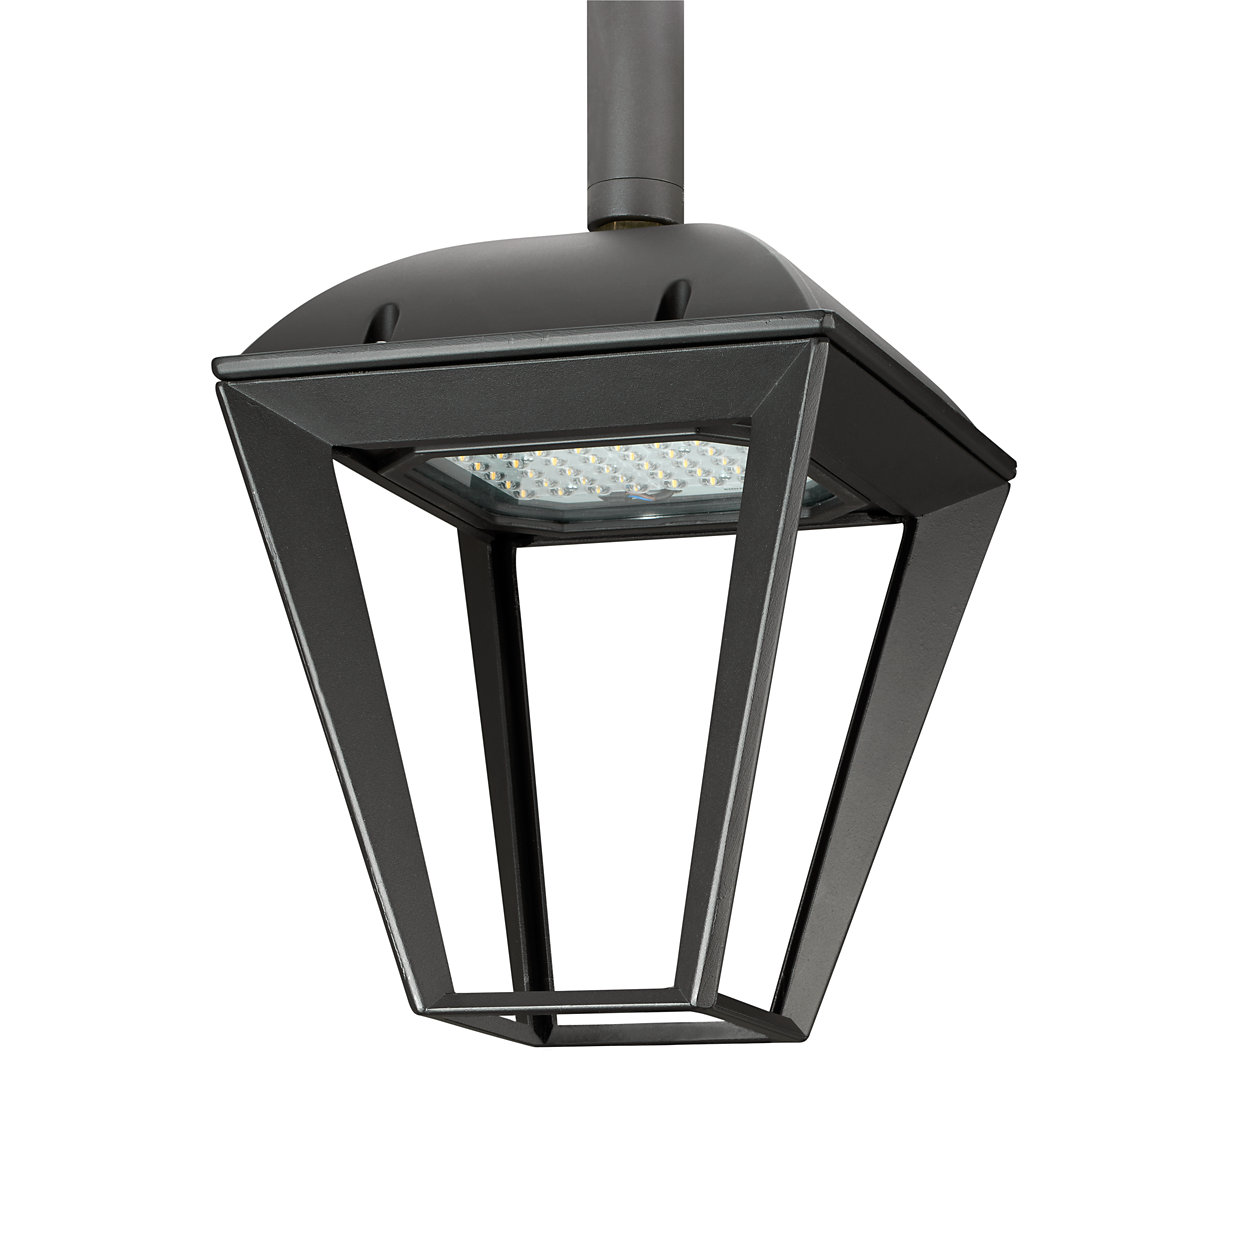 Micenas gen2 LED – contemporary interpretation of the historic street lantern